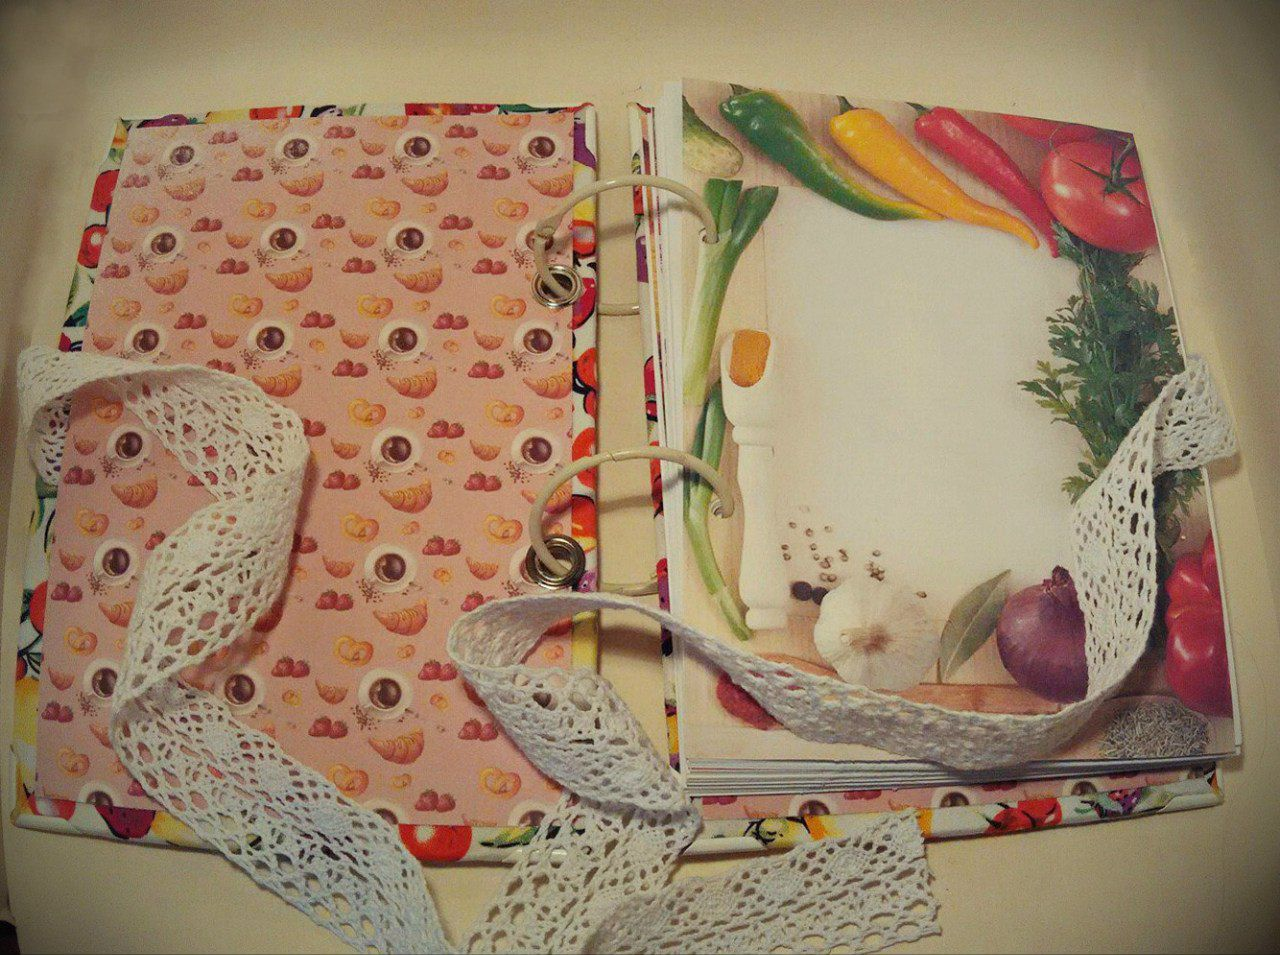 cooking delicious recipebook handmade